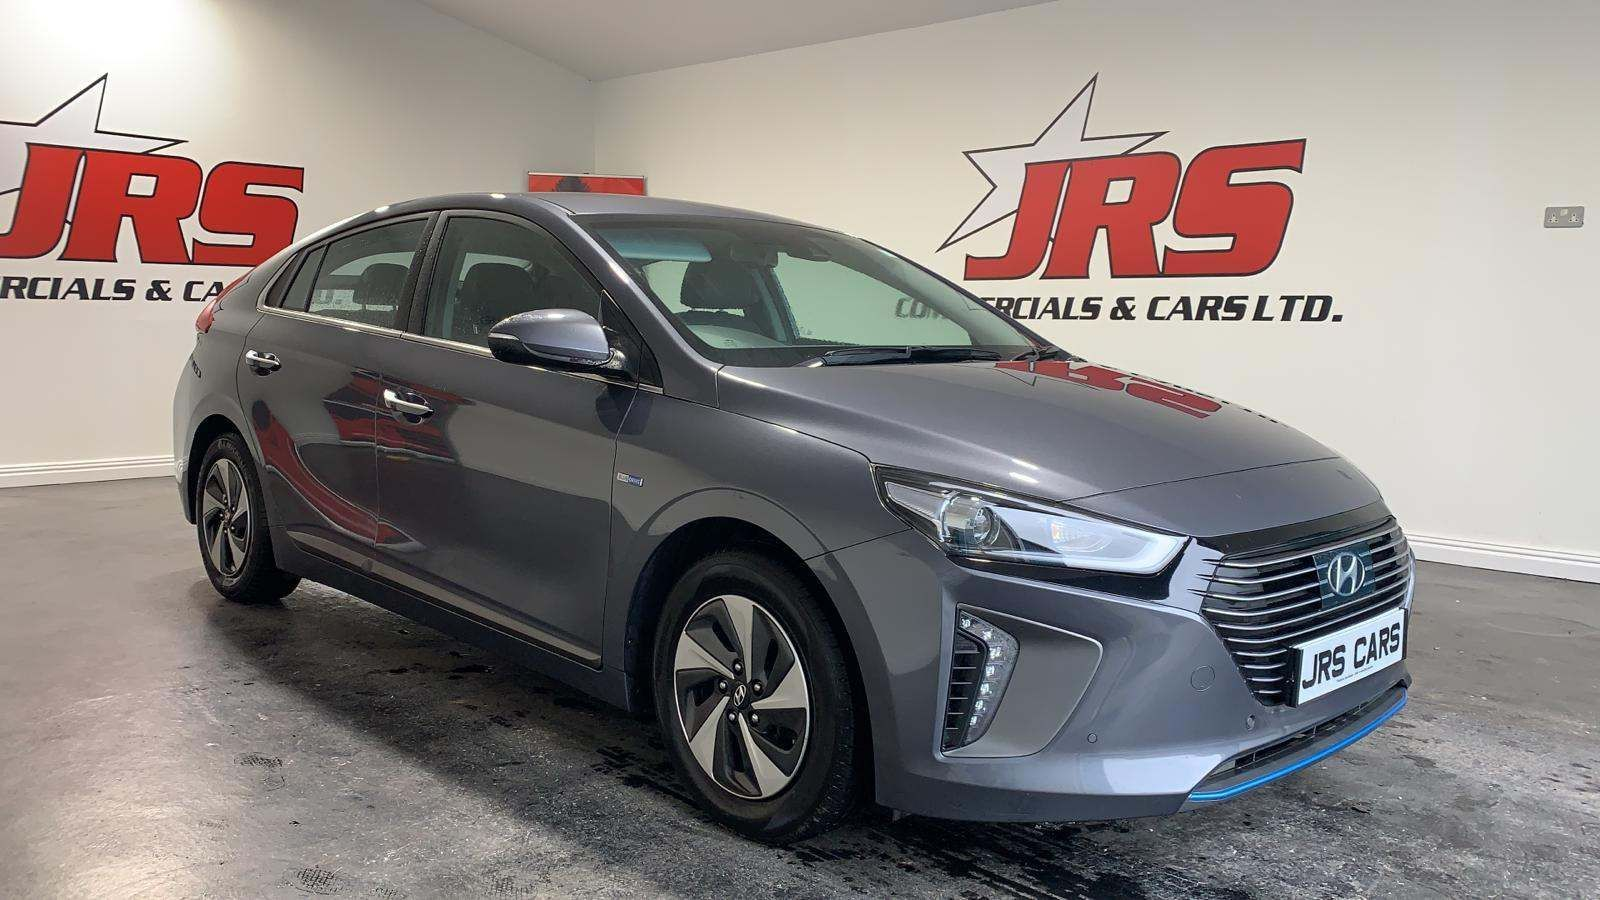 2018 HYUNDAI Ioniq 1.6 h-GDi Premium SE DCT (s/s) Hybrid – Petrol/Electric Automatic *Heated Seats – Aux/USB* – J R S Commercials And Cars Dungannon full